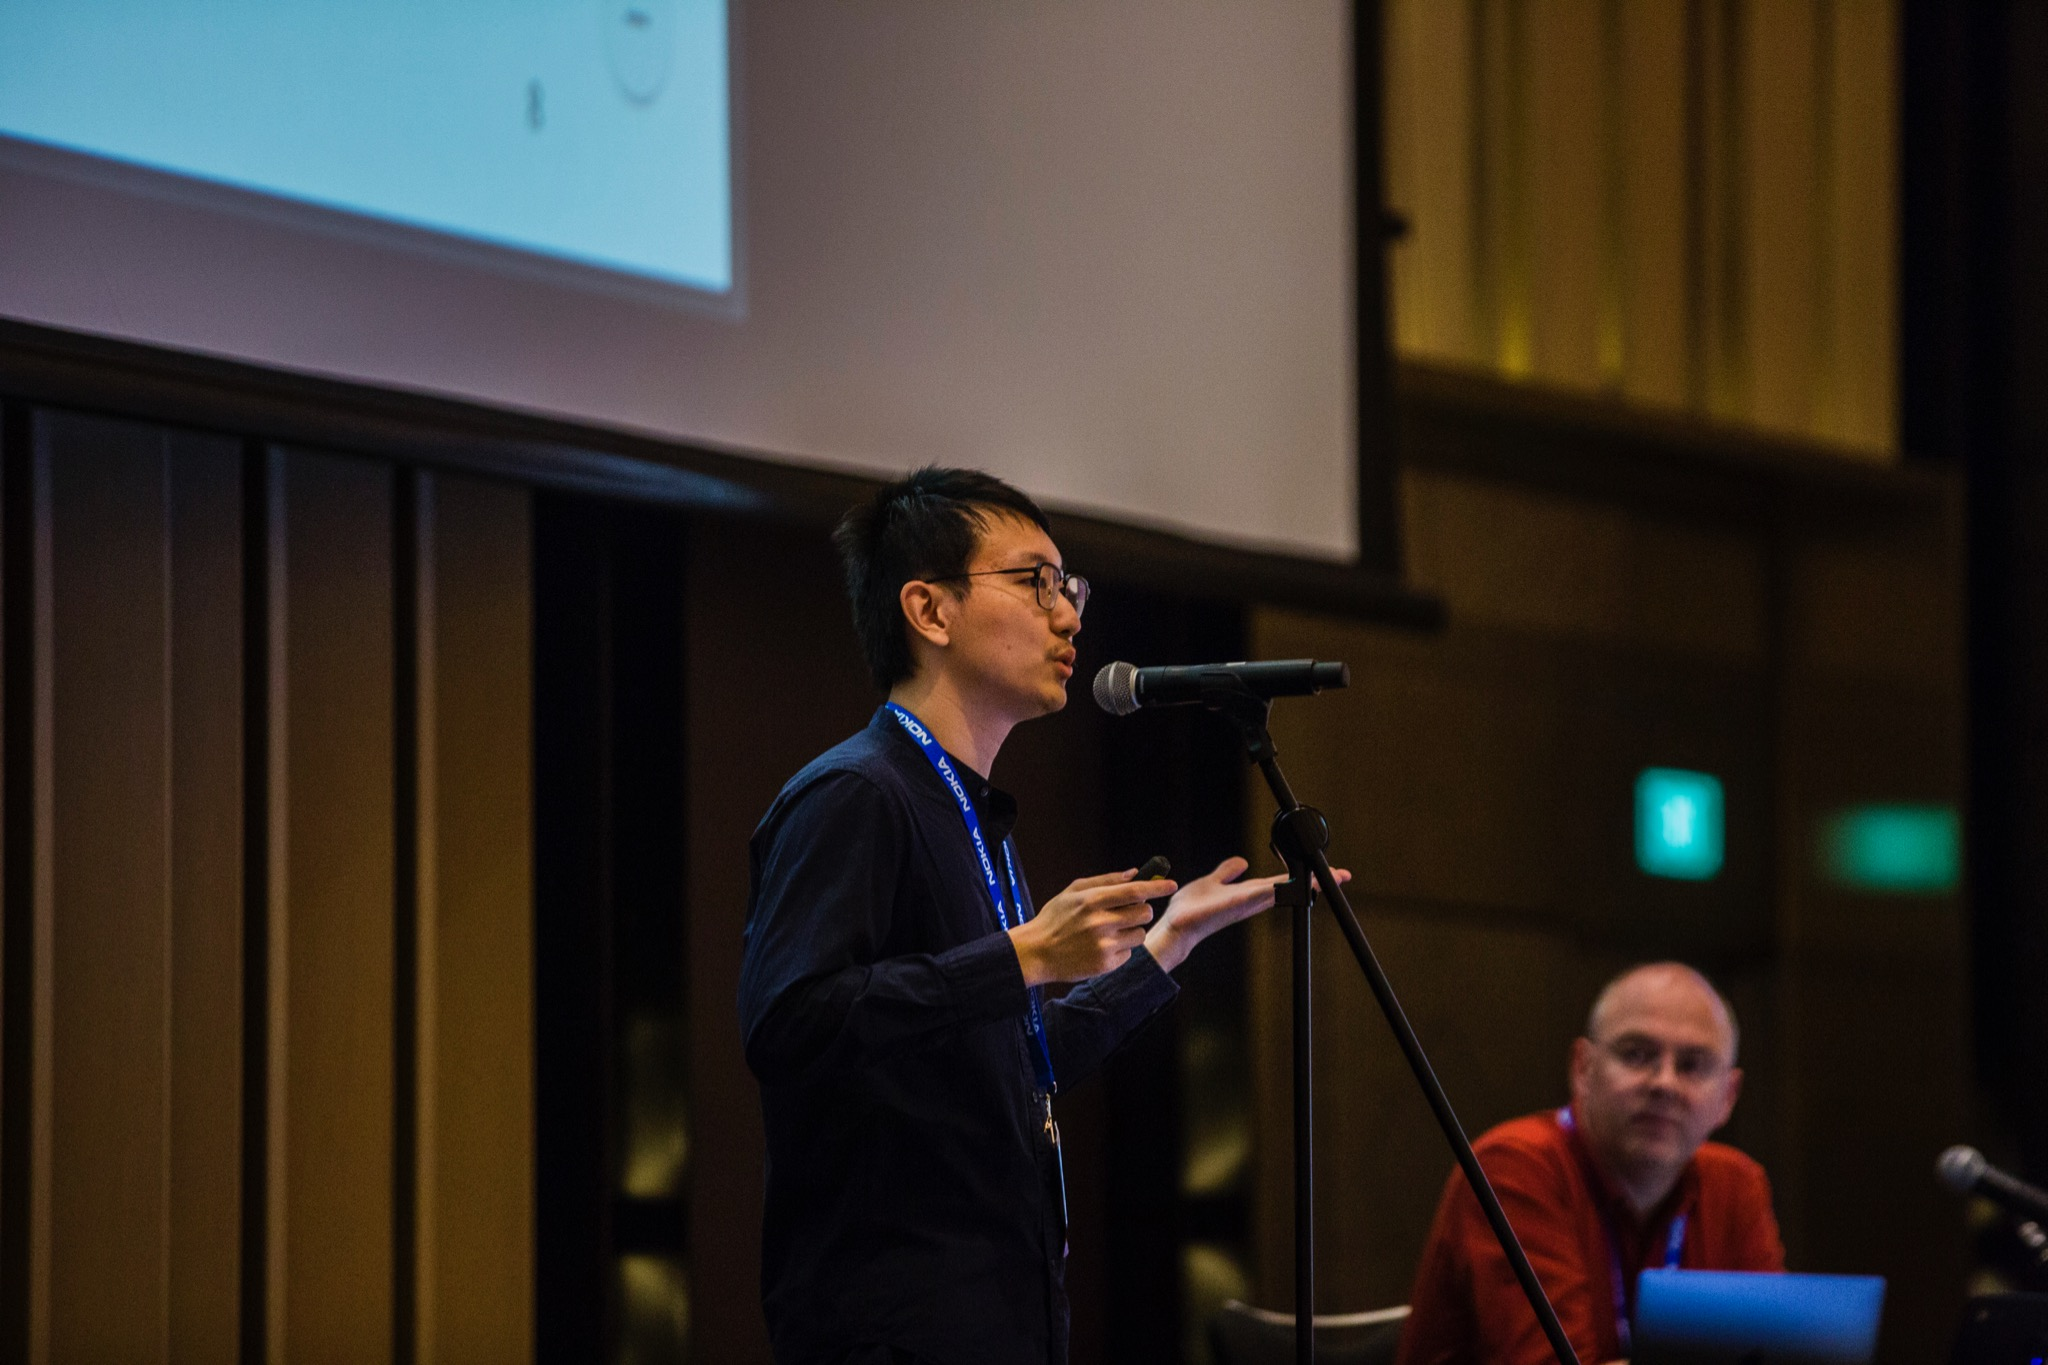 Weiteng Chen giving the ANRP prize talk at IETF 106